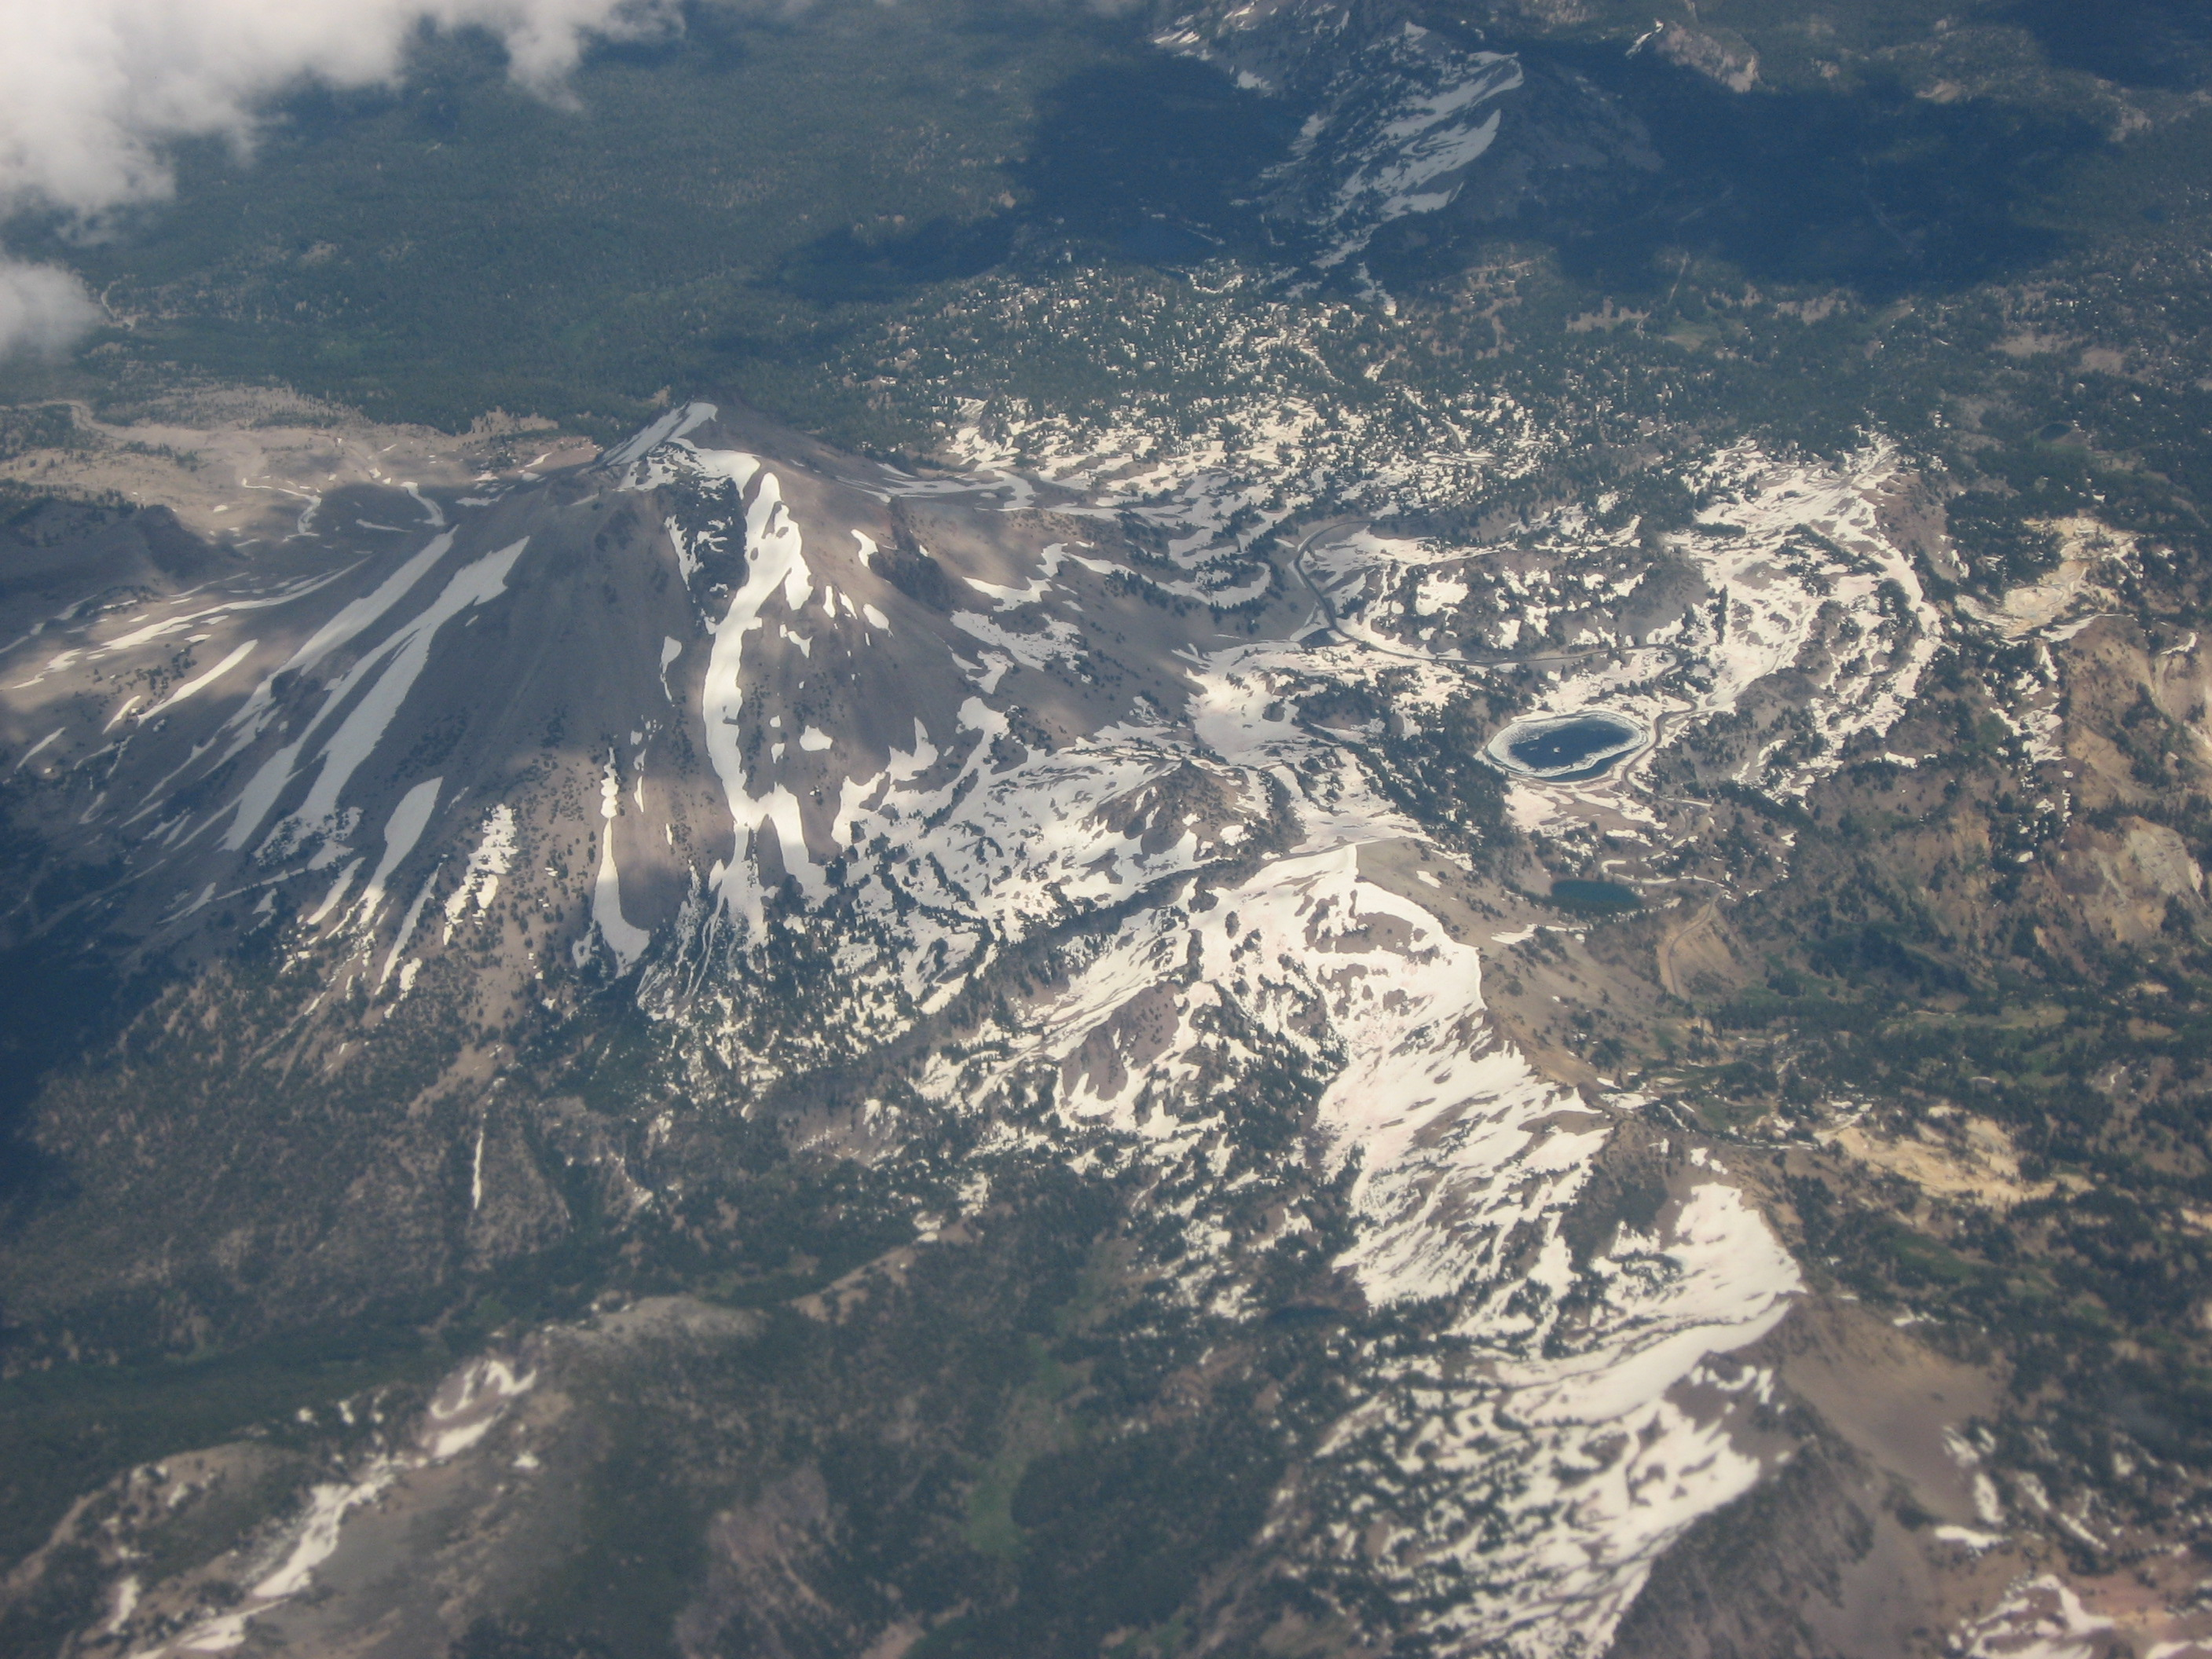 Lassen Peak from the air.